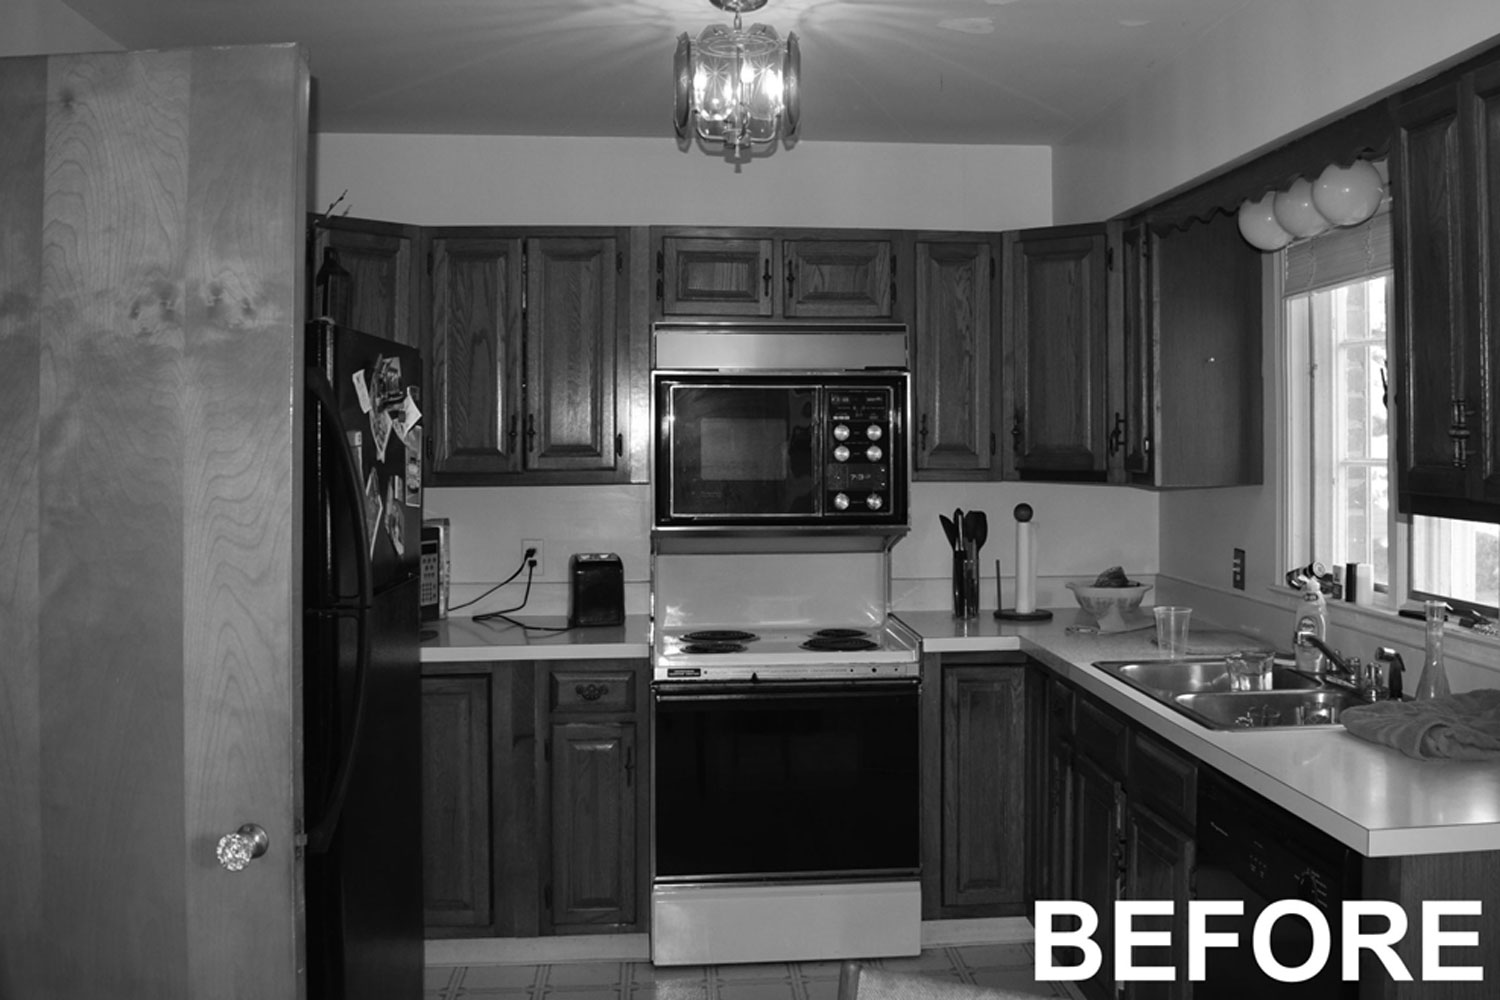 Kitchen Remodel Before Image